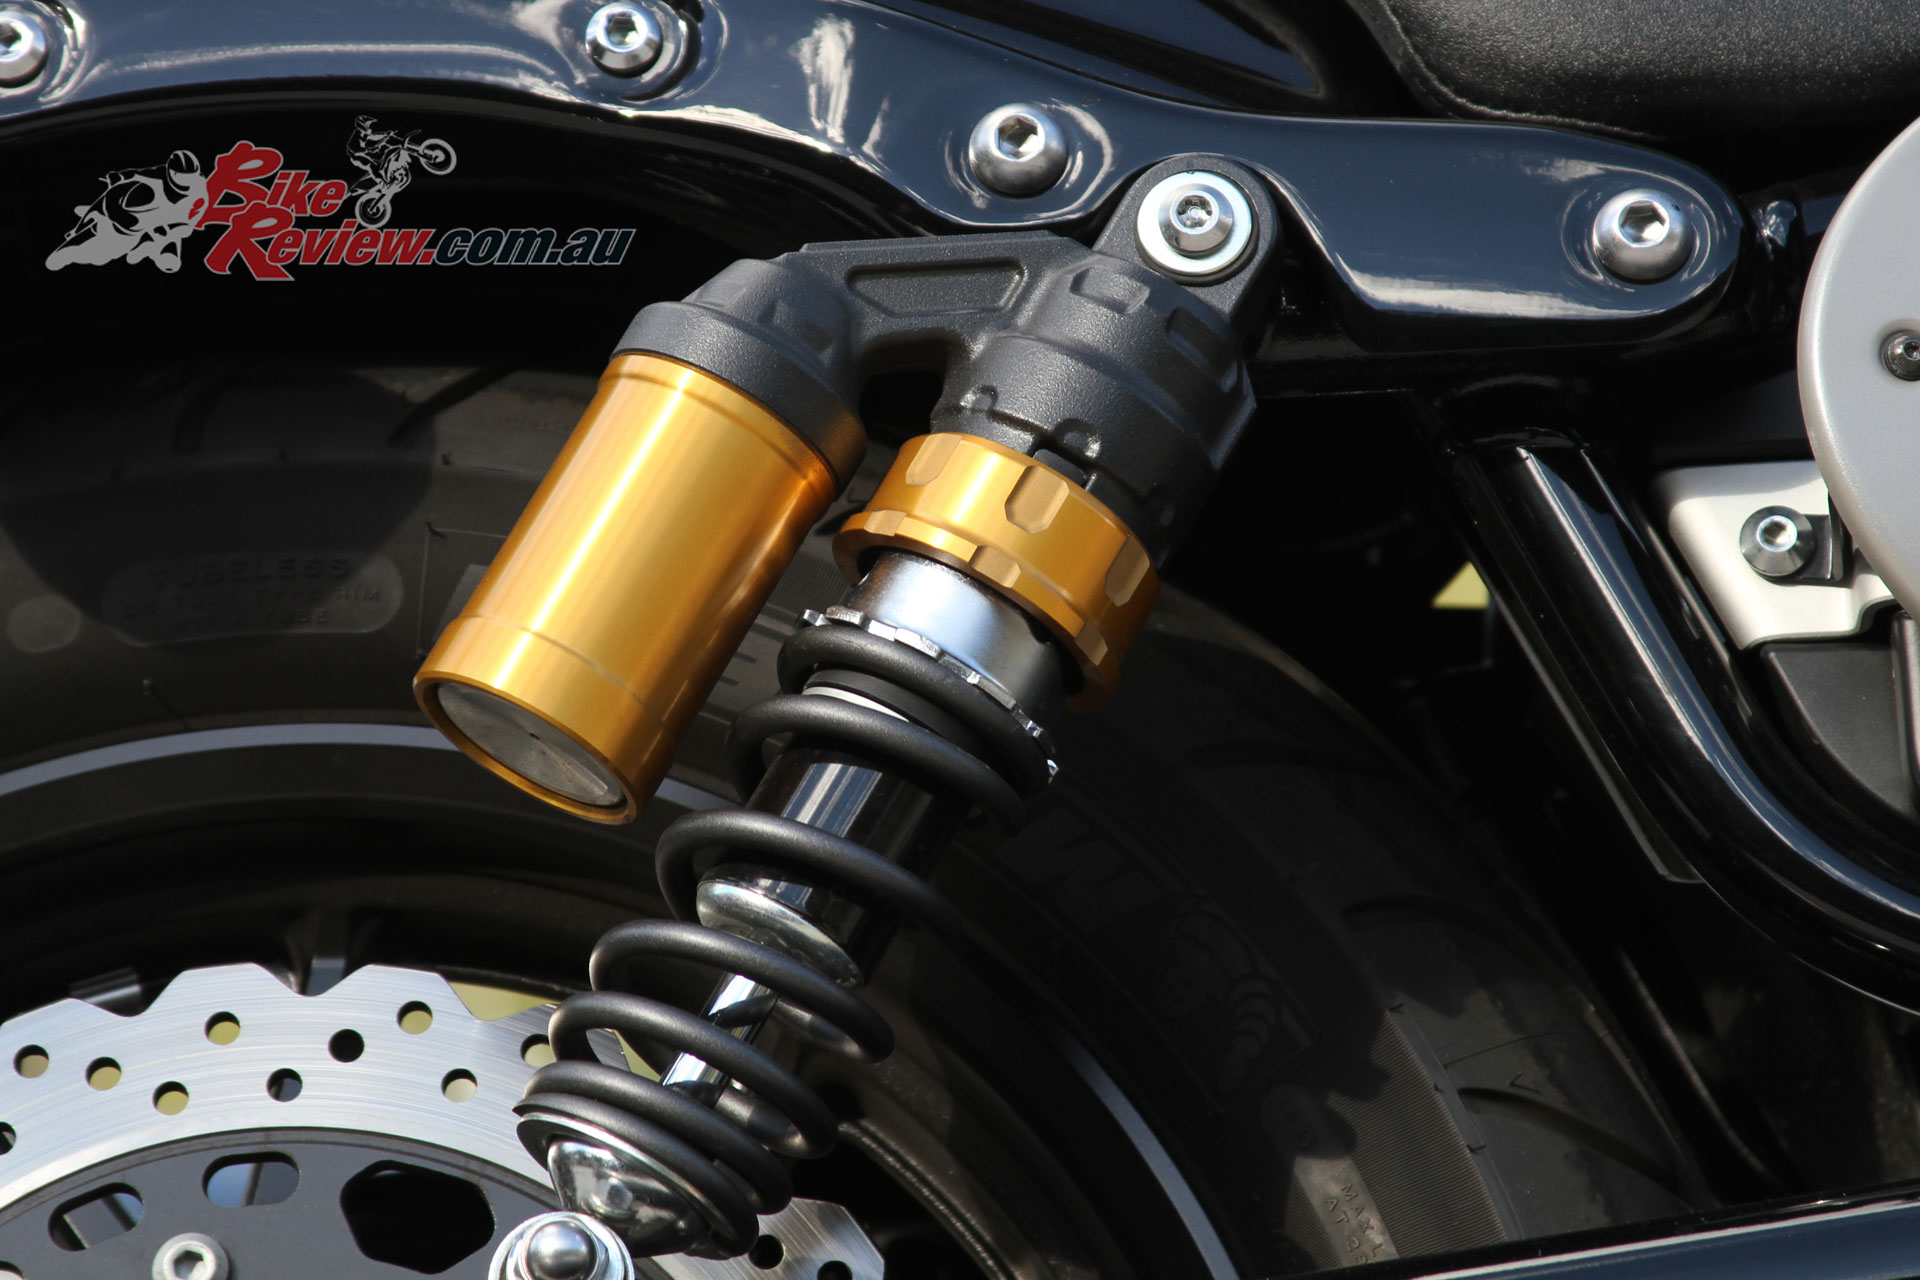 Bolt R spec rear shocks with reservoirs are an upgrade over the standard Bolt's items